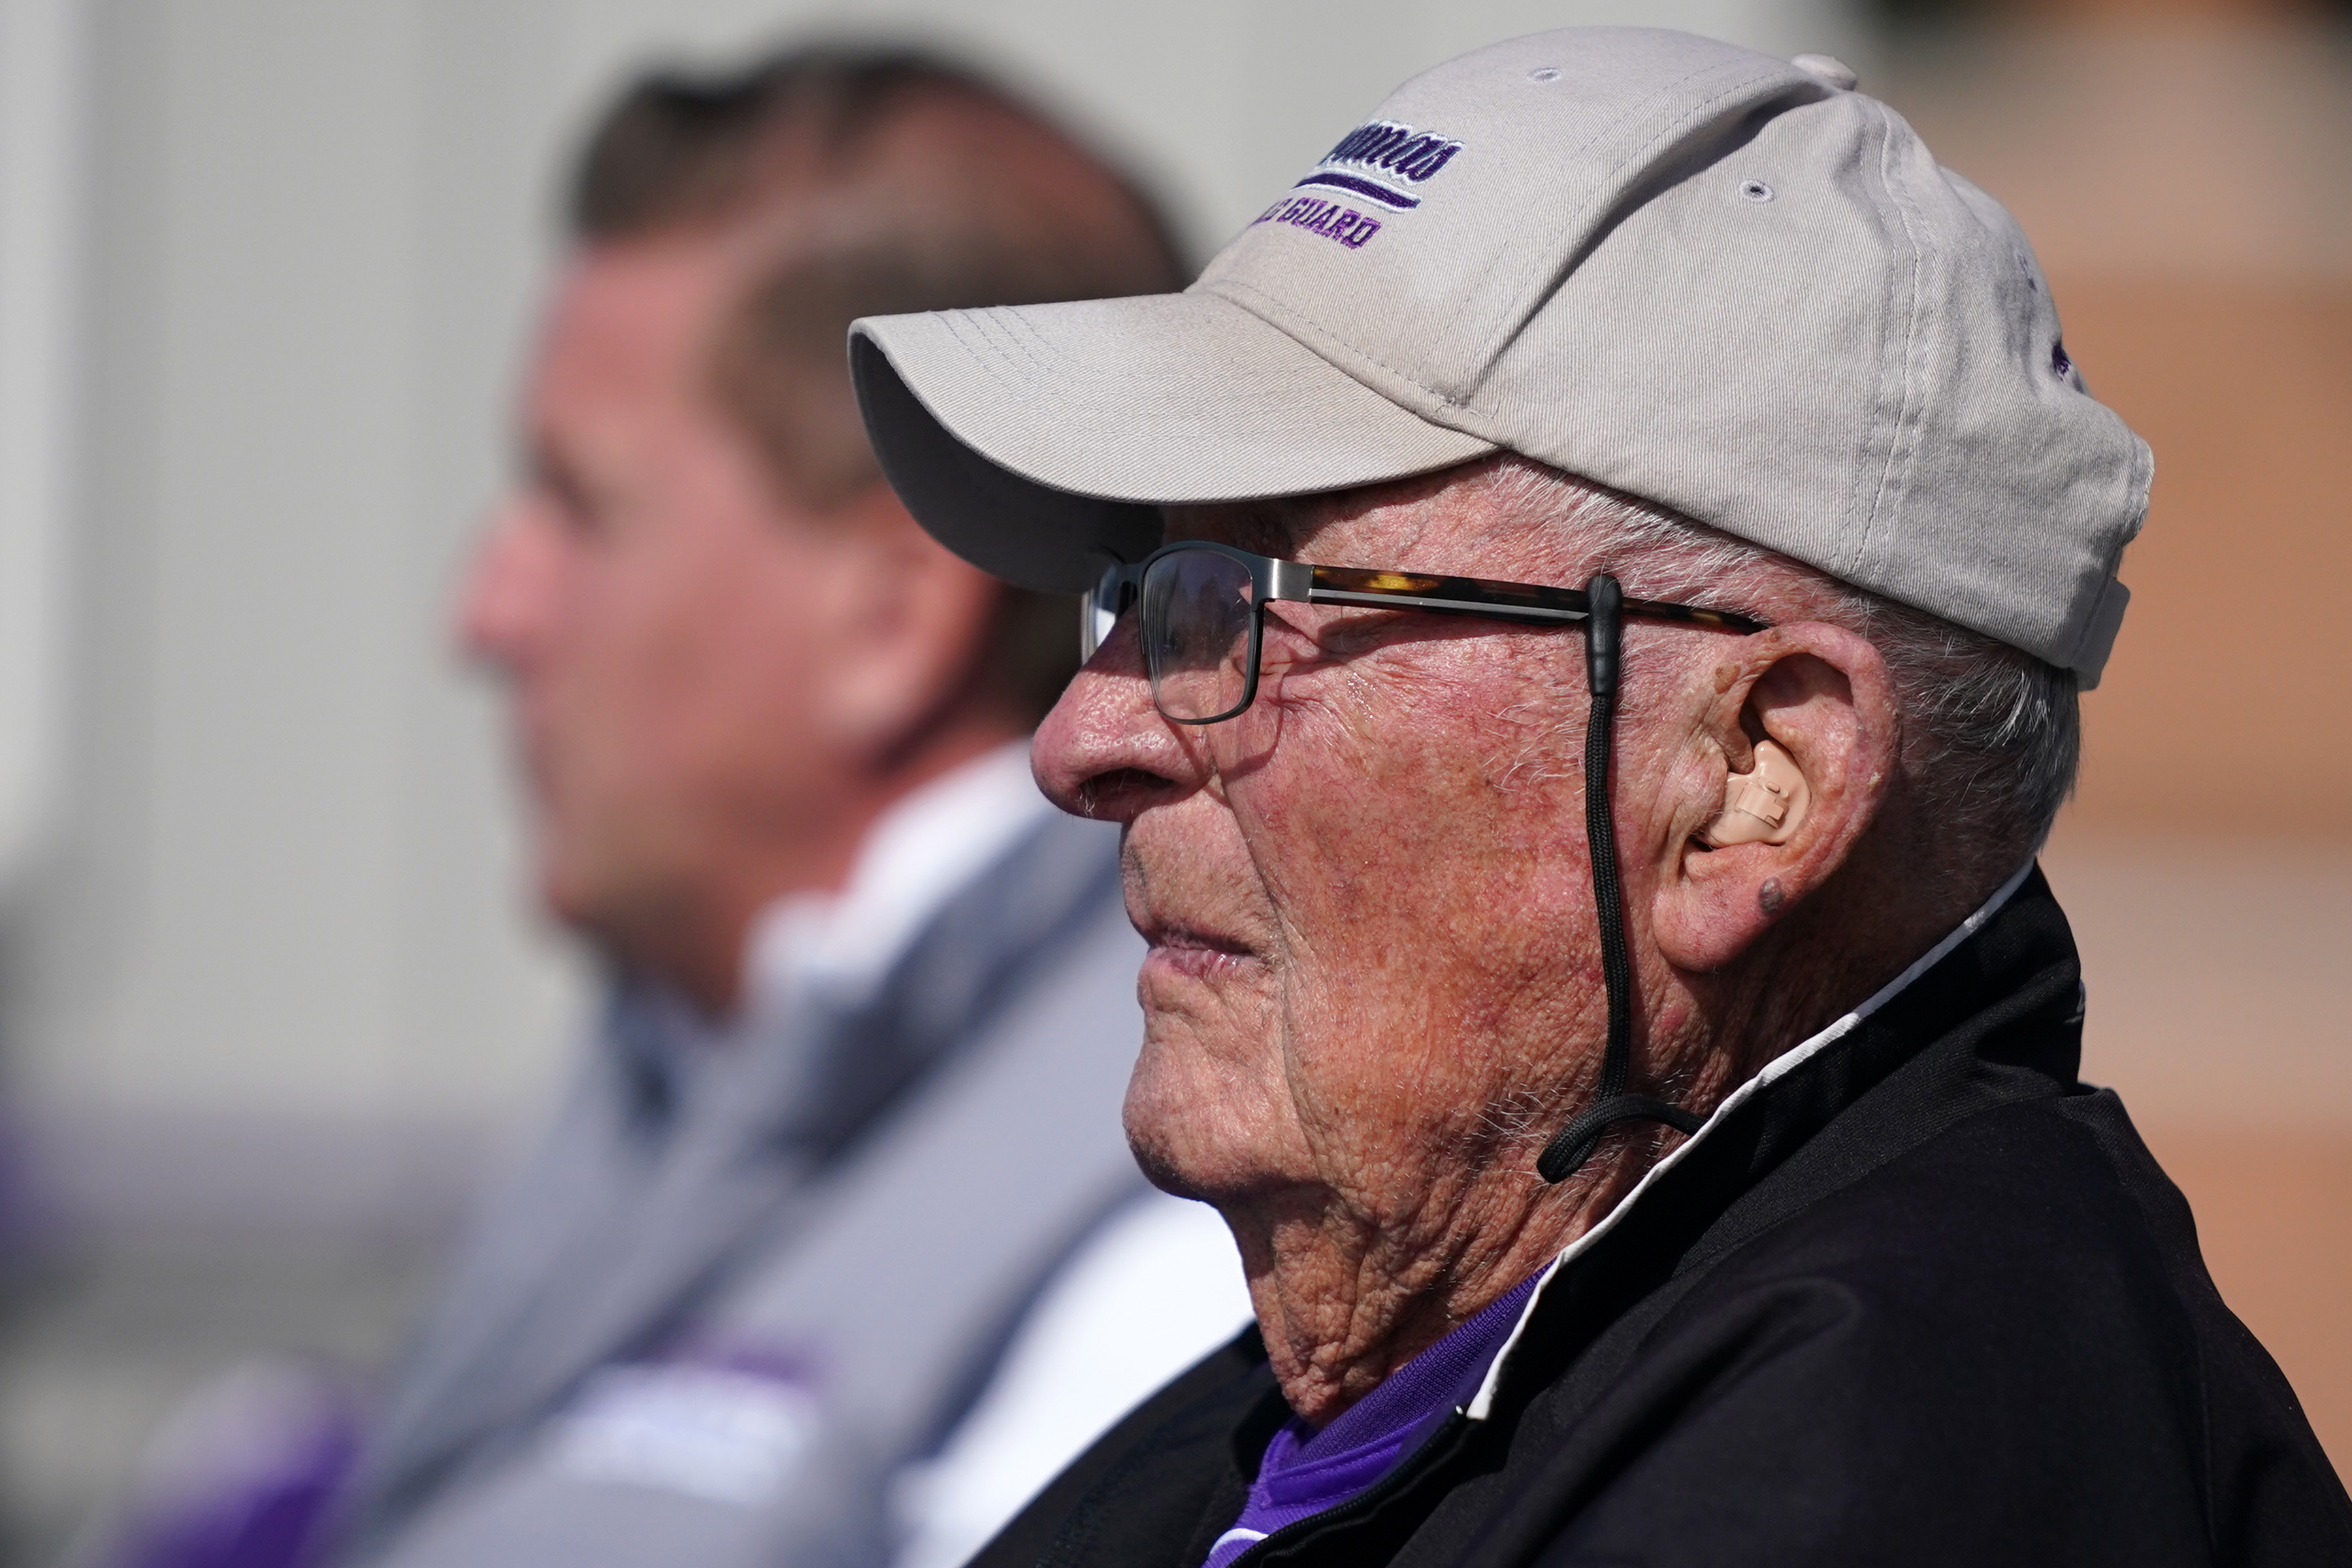 Tom Pacholl who played football for St. Thomas in the 1940's watched their first NCAA Division I game from the stands